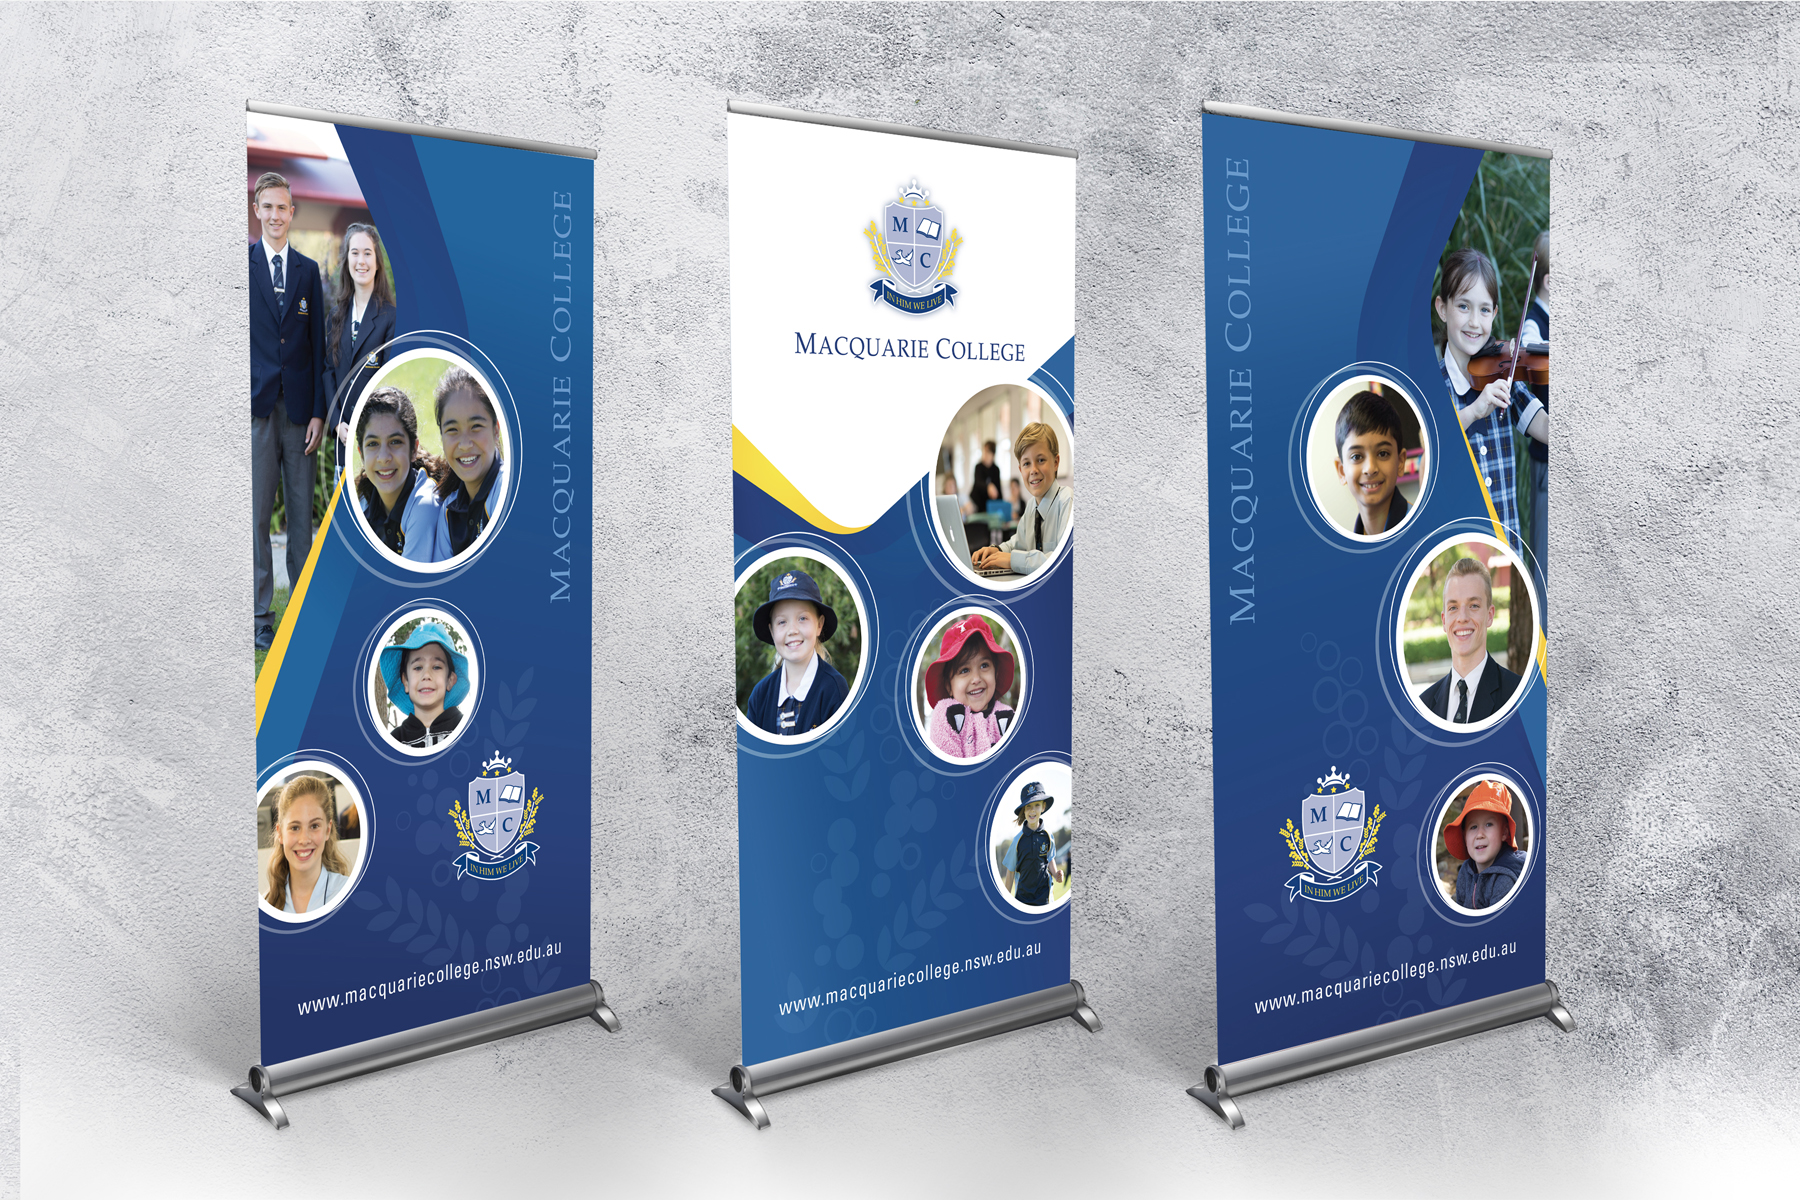 Macquarie College Pull-up Banners on display